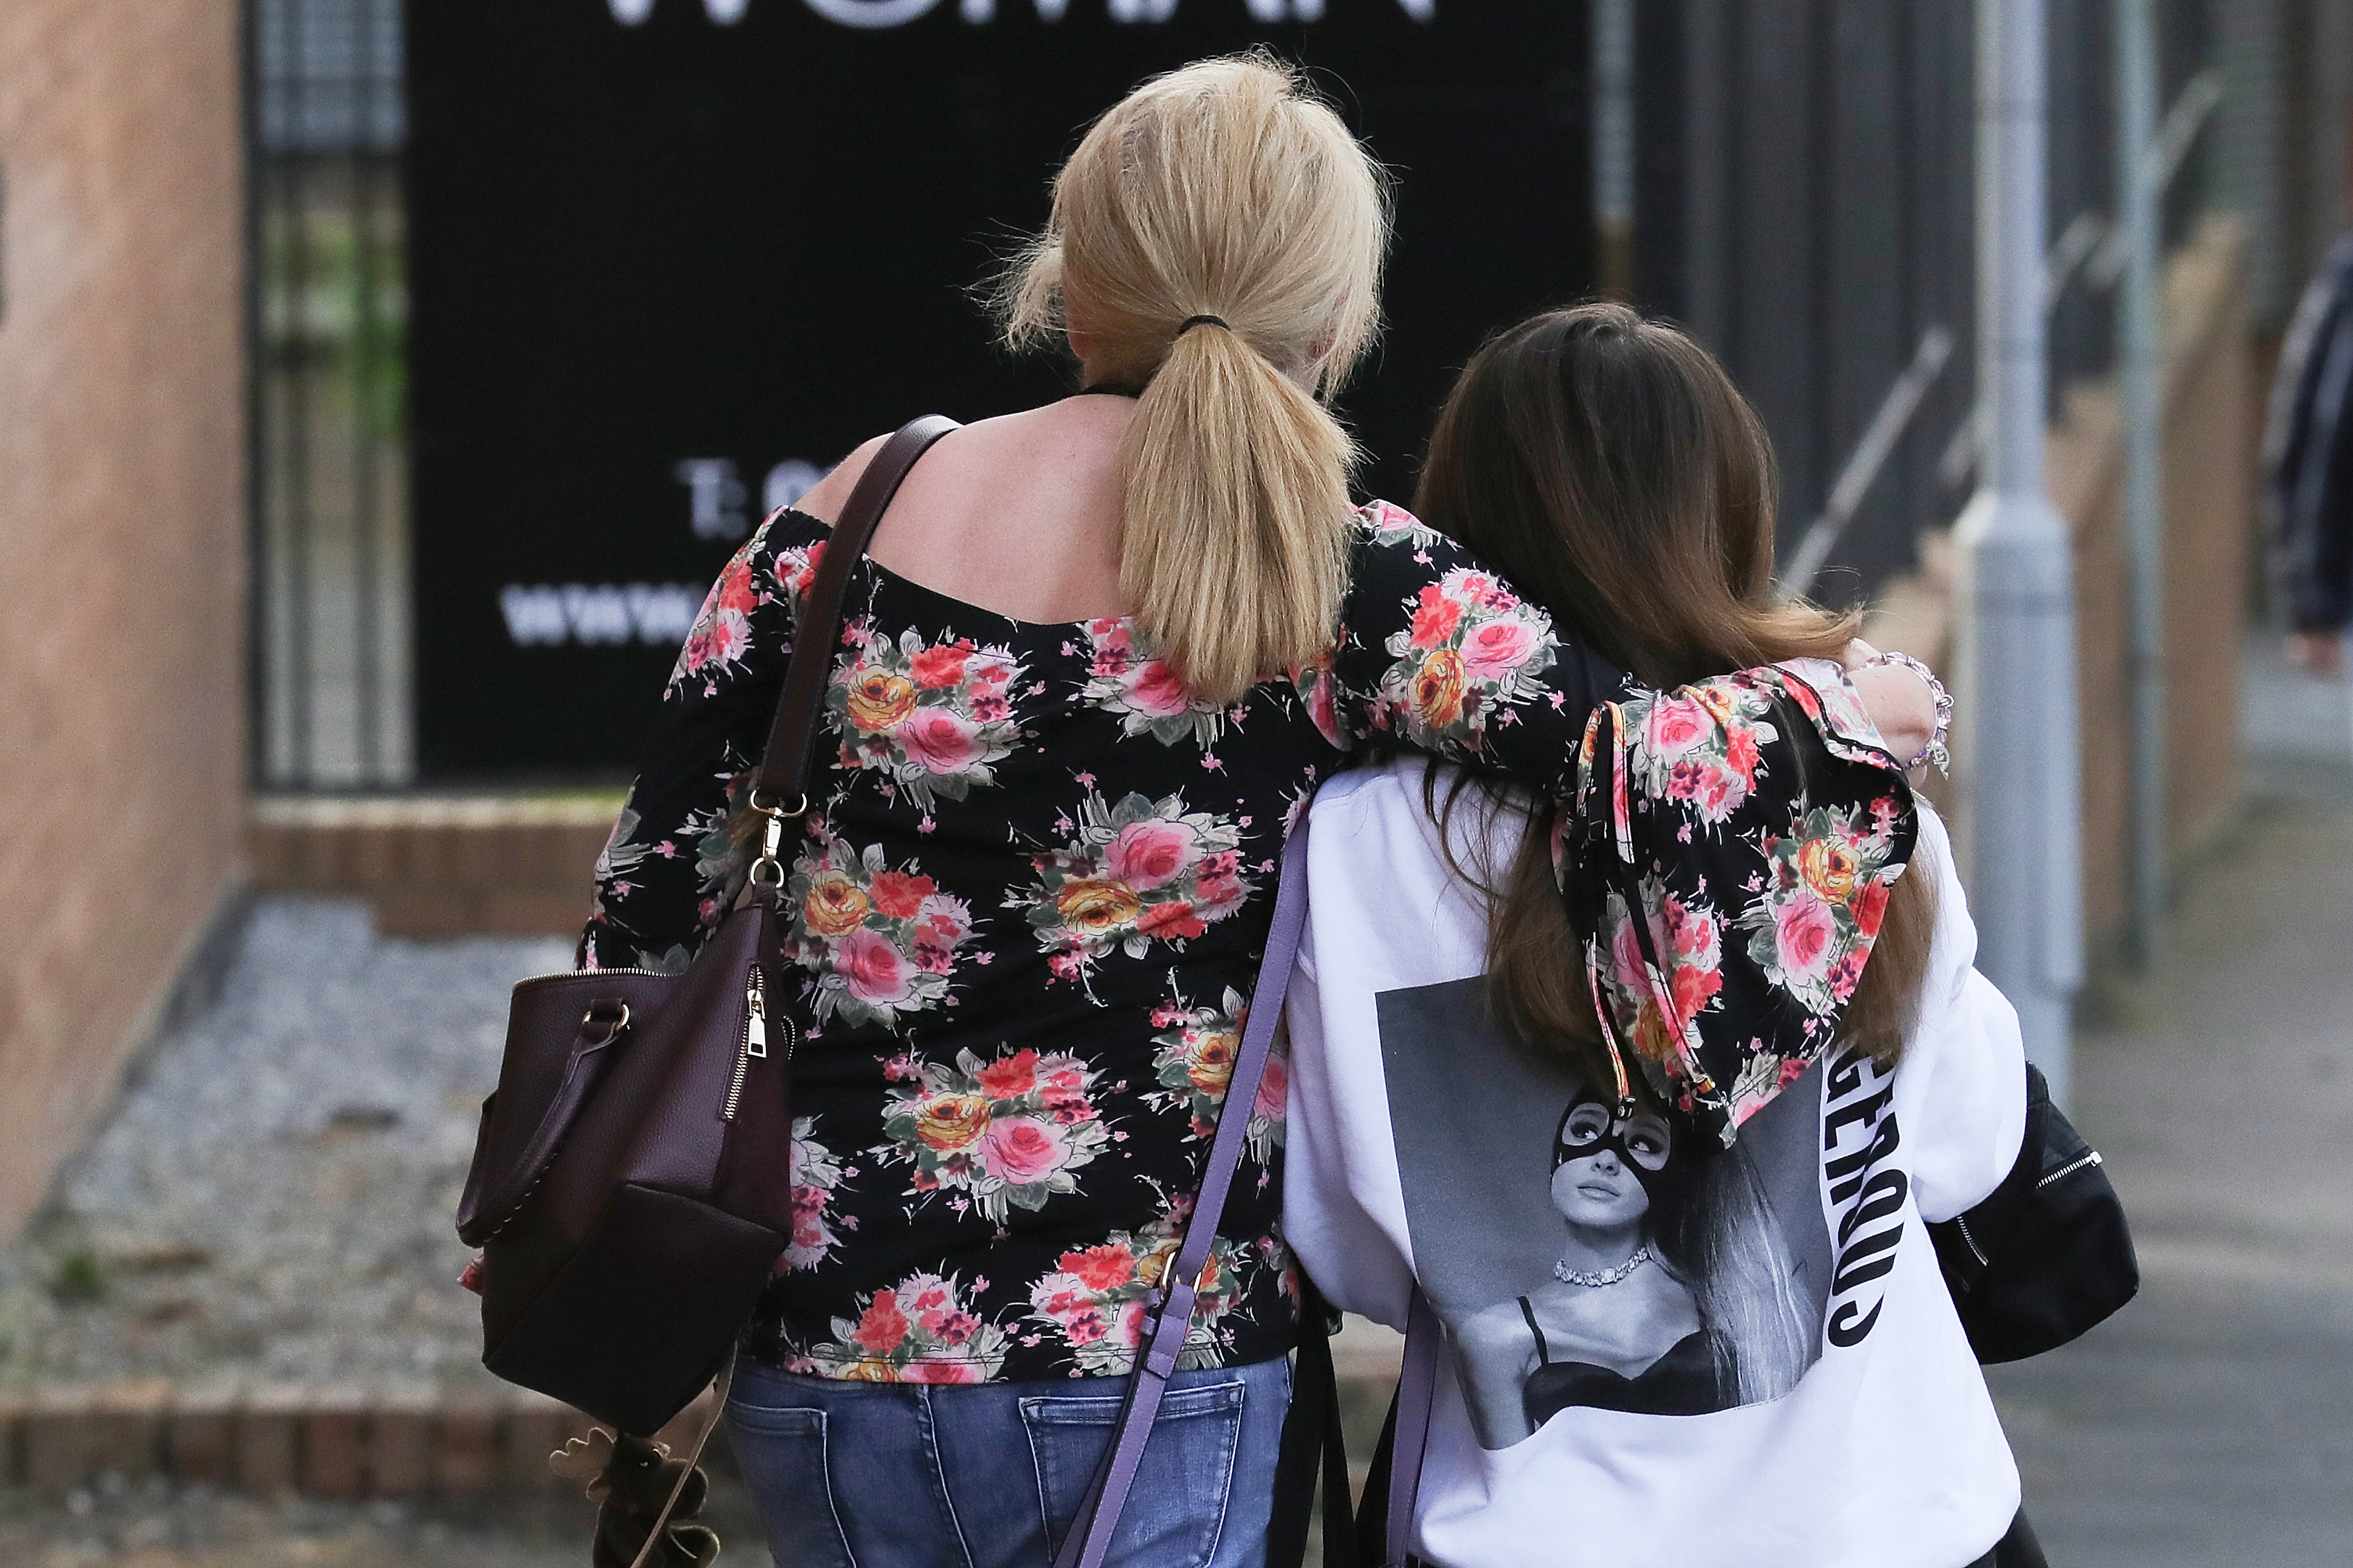 Ariana Grande concert attendees Karen Moore and her daughter Molly Steed, aged 14, from Derby,  were given refuge after last night's explosion at Manchester Arena.